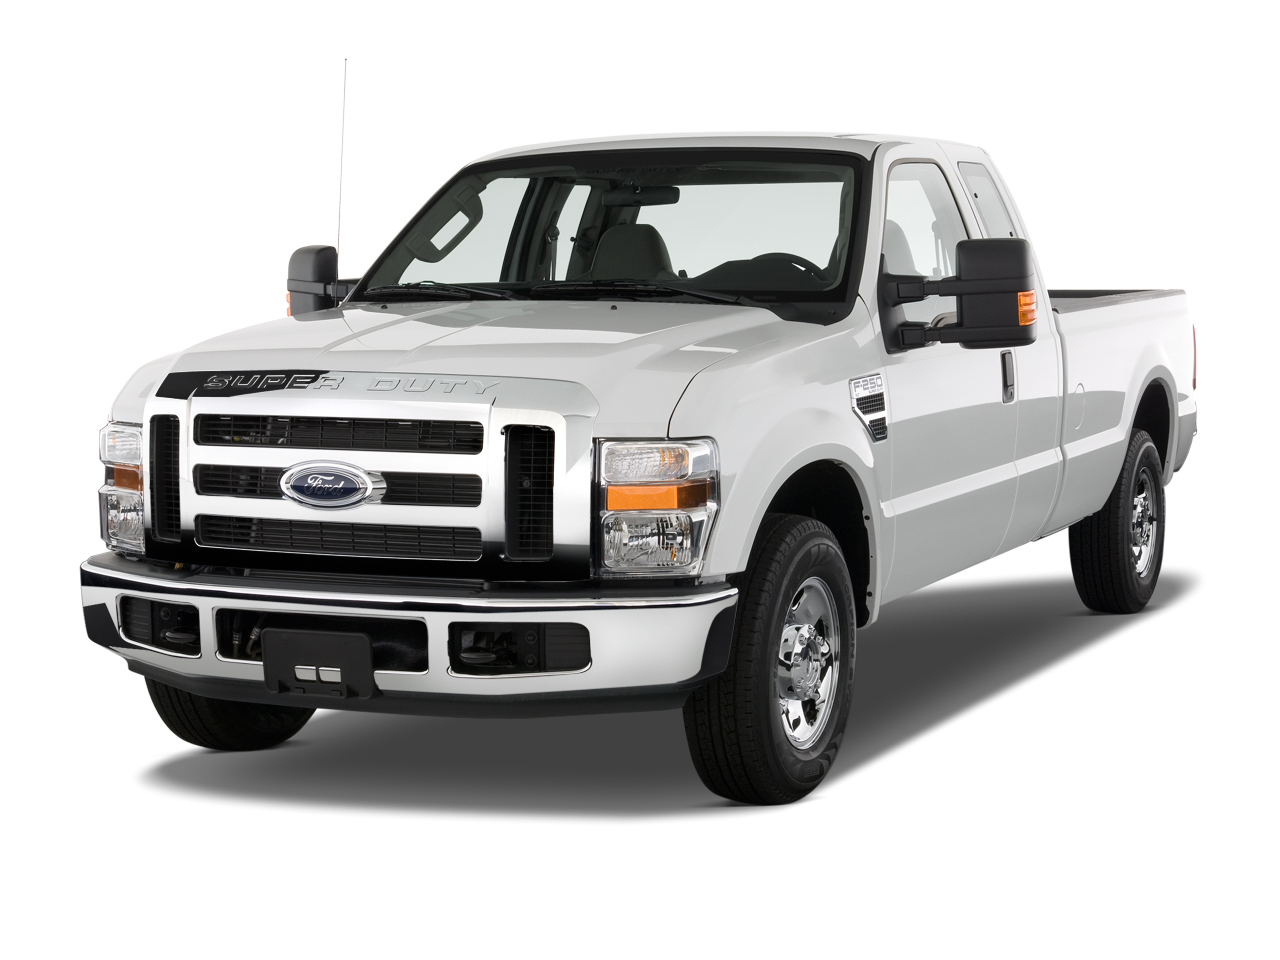 2010 ford super duty f 250 review ratings specs prices. Black Bedroom Furniture Sets. Home Design Ideas